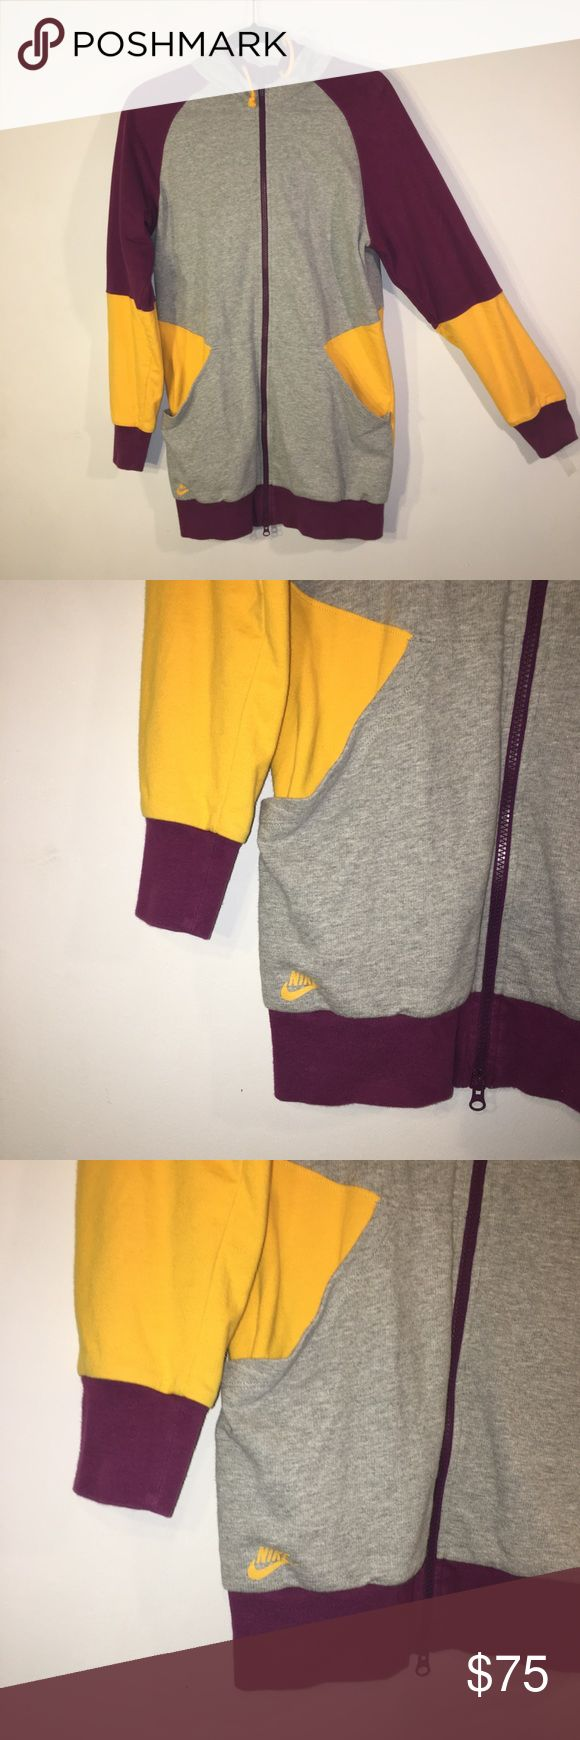 "Vintage Nike Hoodie Nike Sportswear Zip Up Hoodie. Size medium. Long Tunic style. 80s or 90s vintage Retro. Excellent used condition.  Hips measure 18"" across and length is 31"". Purple gray yellow colorblock. Perfect for fall and layering. Cotton/Polyester blend Nike Tops Sweatshirts & Hoodies"